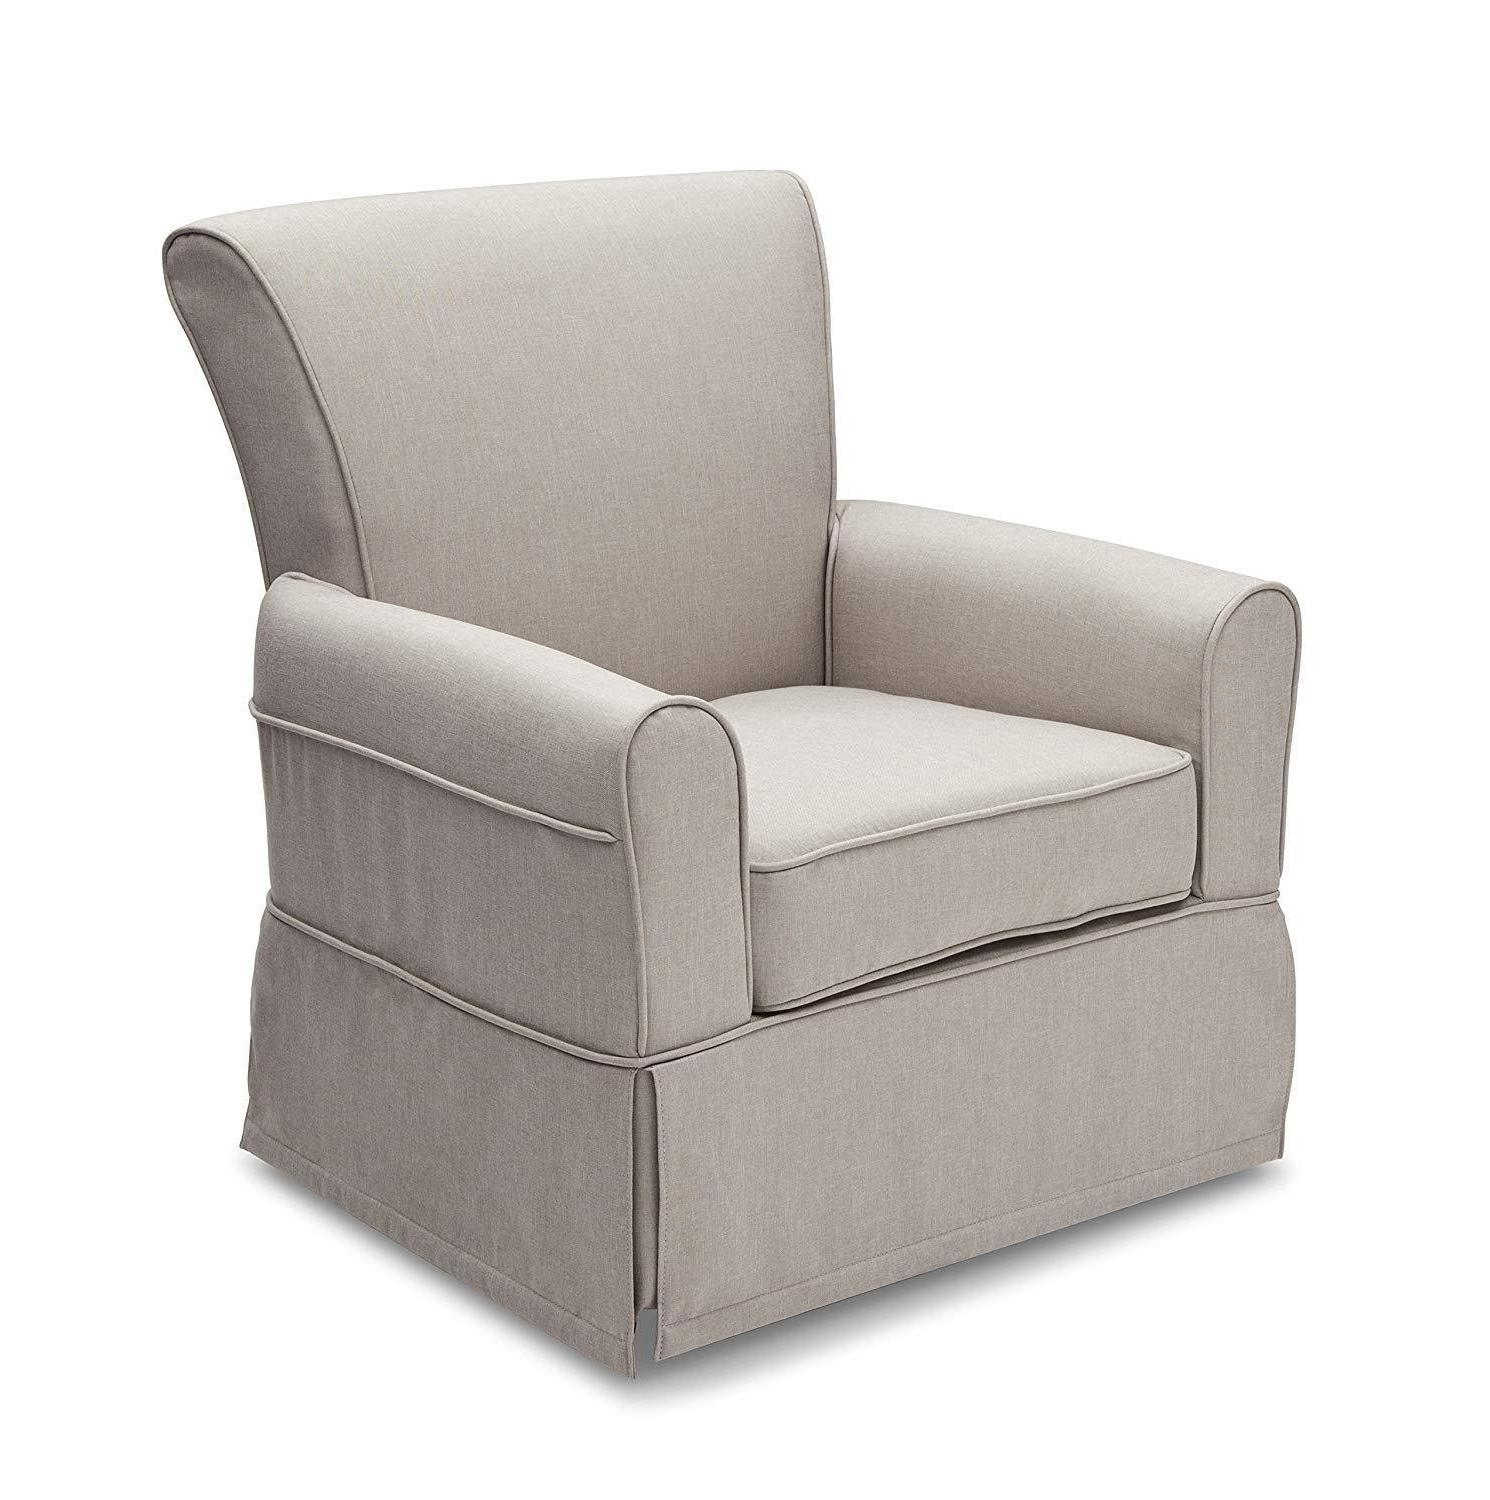 upholstered glider swivel rocker chair sand